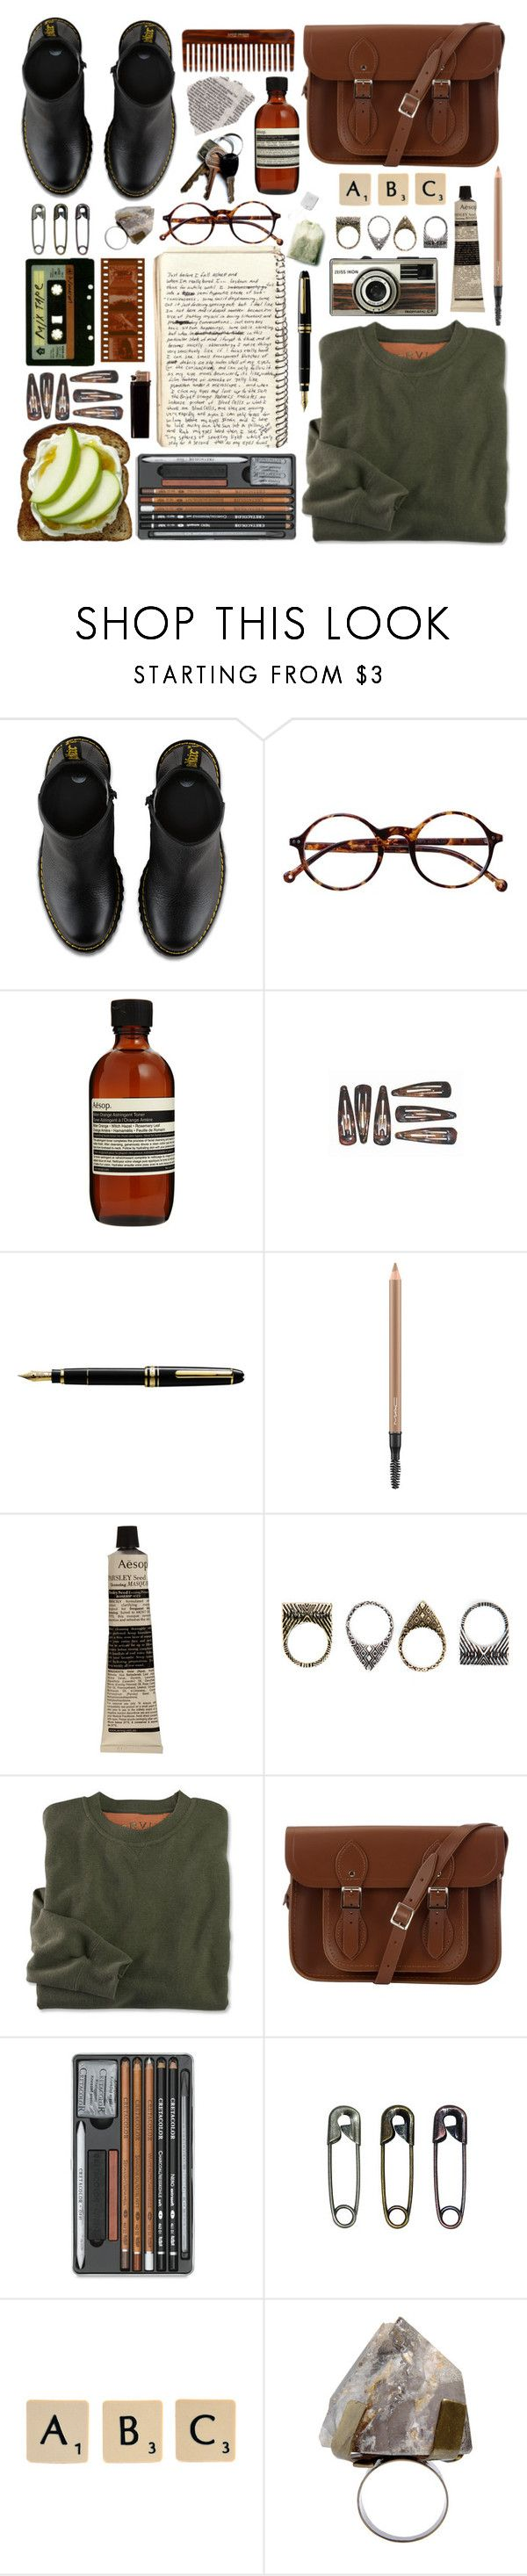 """Always Ready"" by quartzkid ❤ liked on Polyvore featuring Dr. Martens, Retrò, Aesop, HOMMAGE, MAC Cosmetics, Pull&Bear, The Cambridge Satchel Company, Tim Holtz, Michele and Rock 'N Rose"